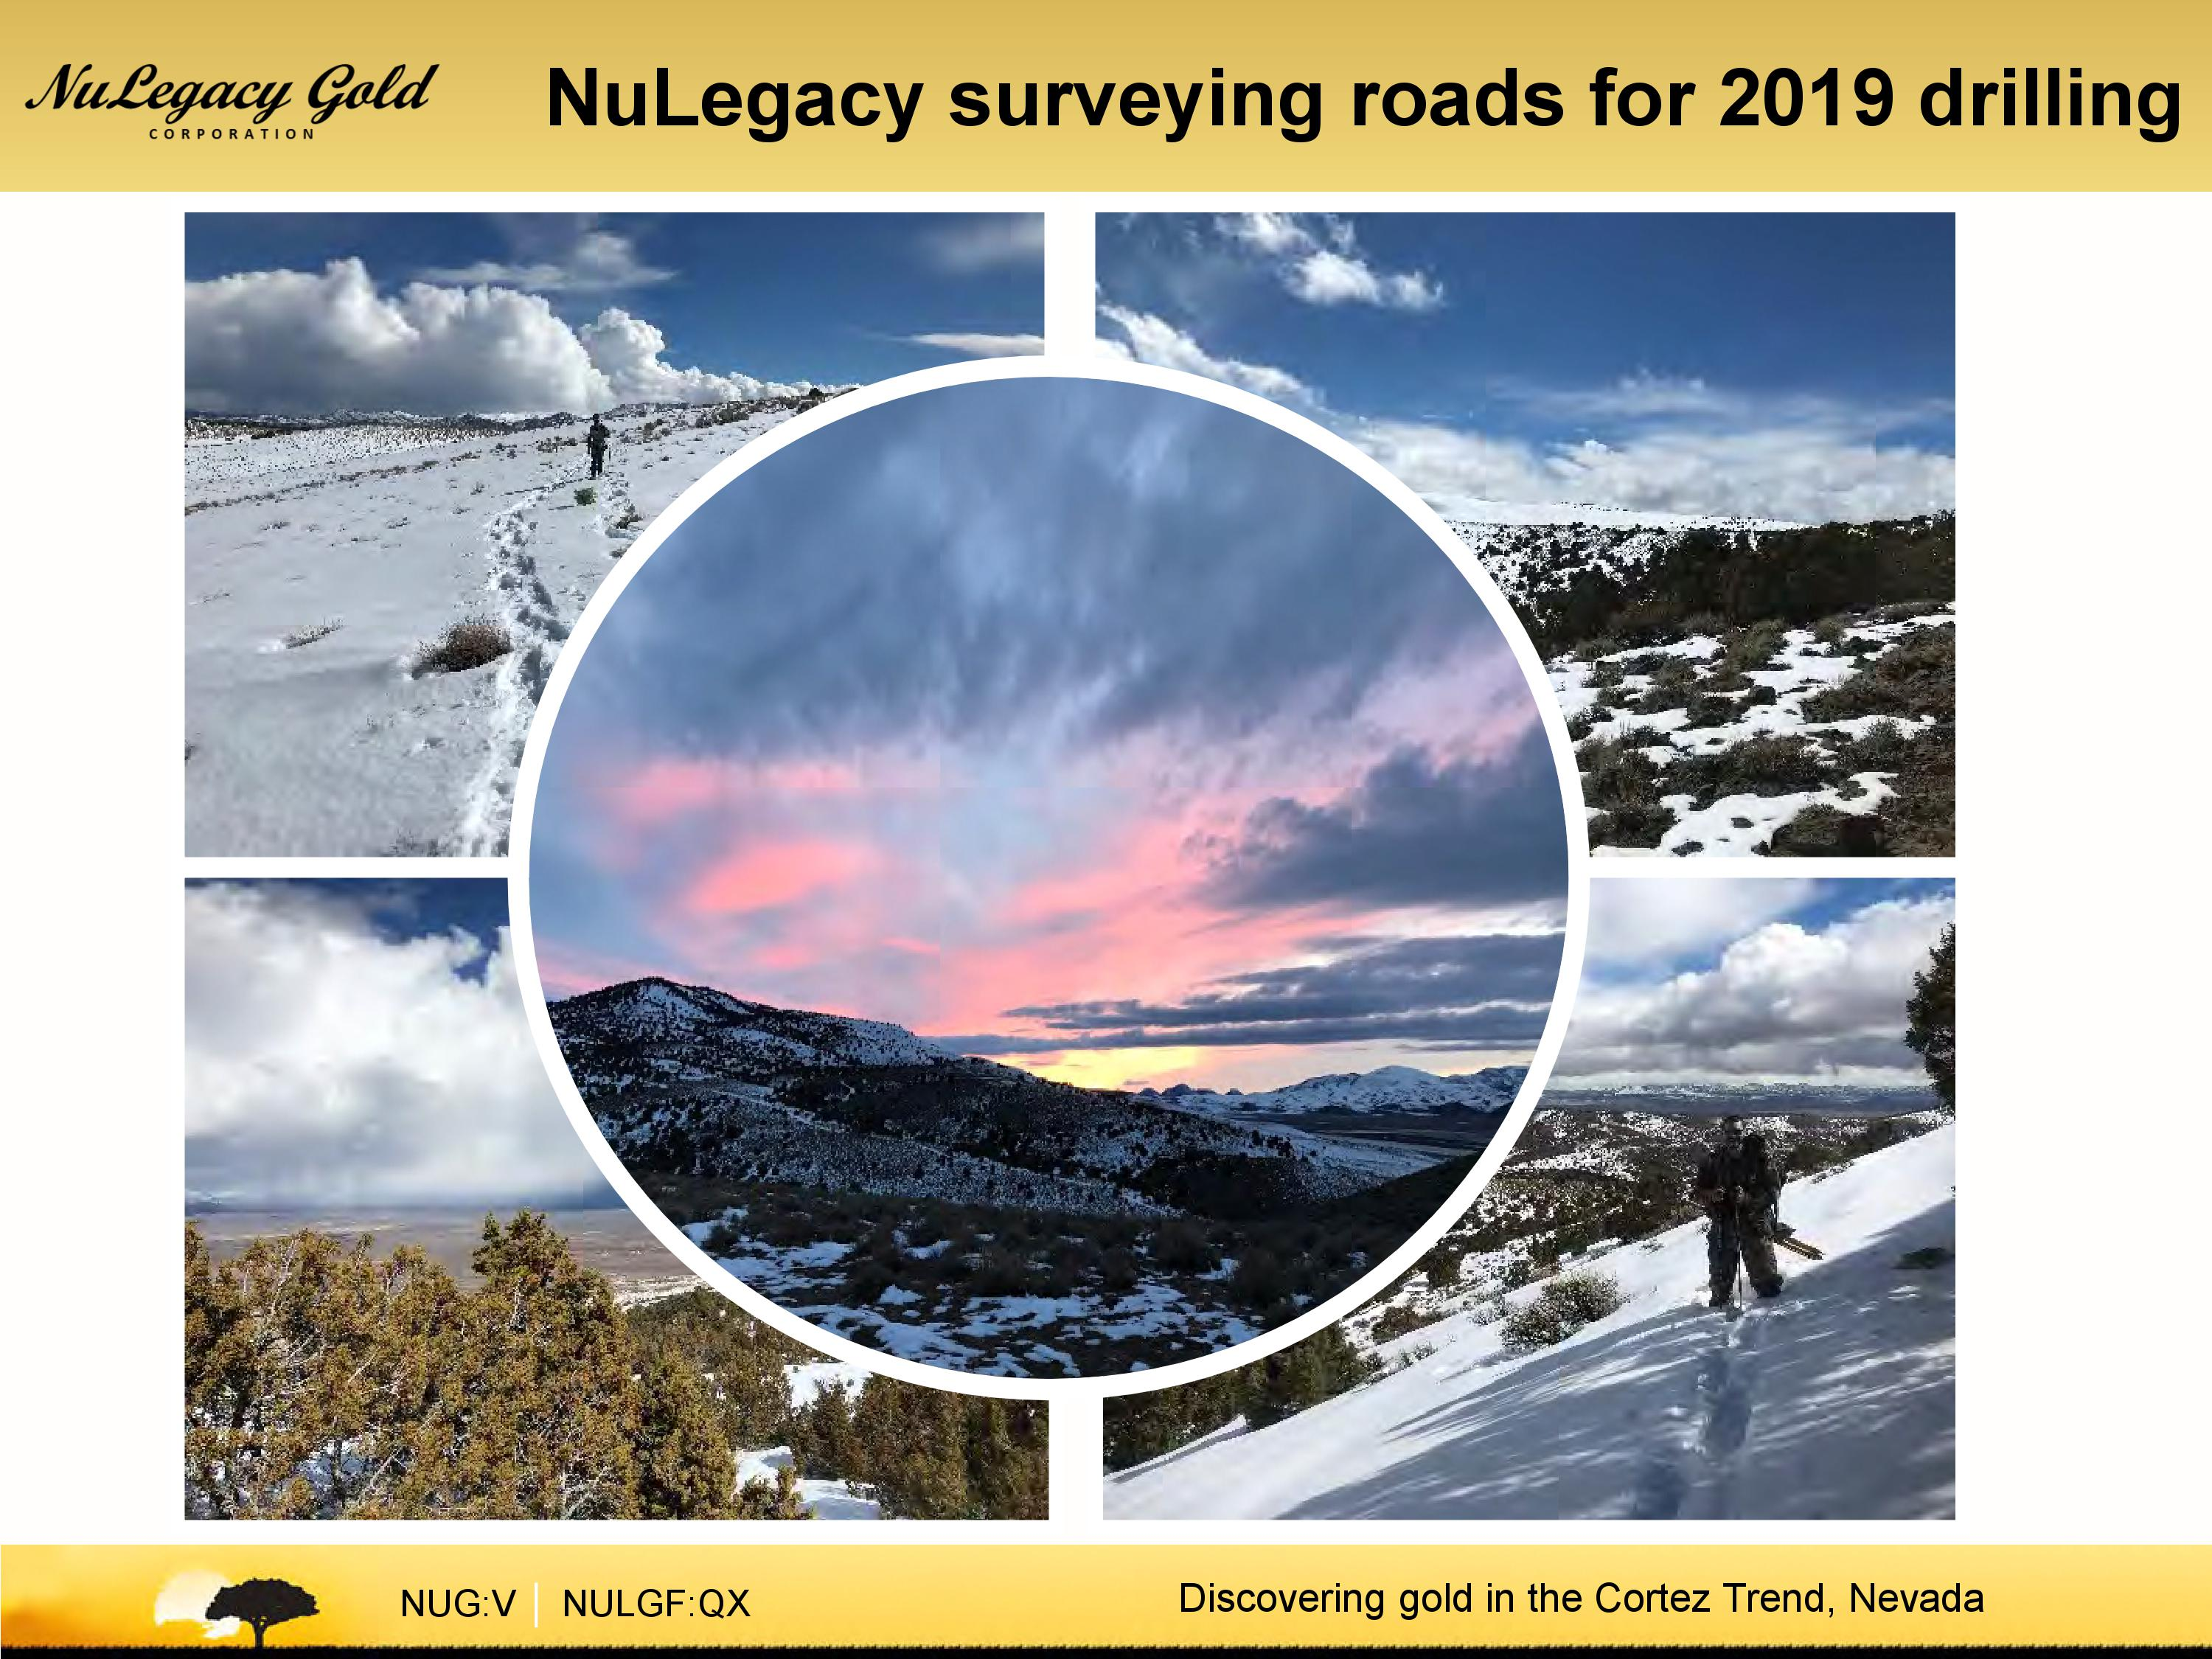 Drilling Roads Survey